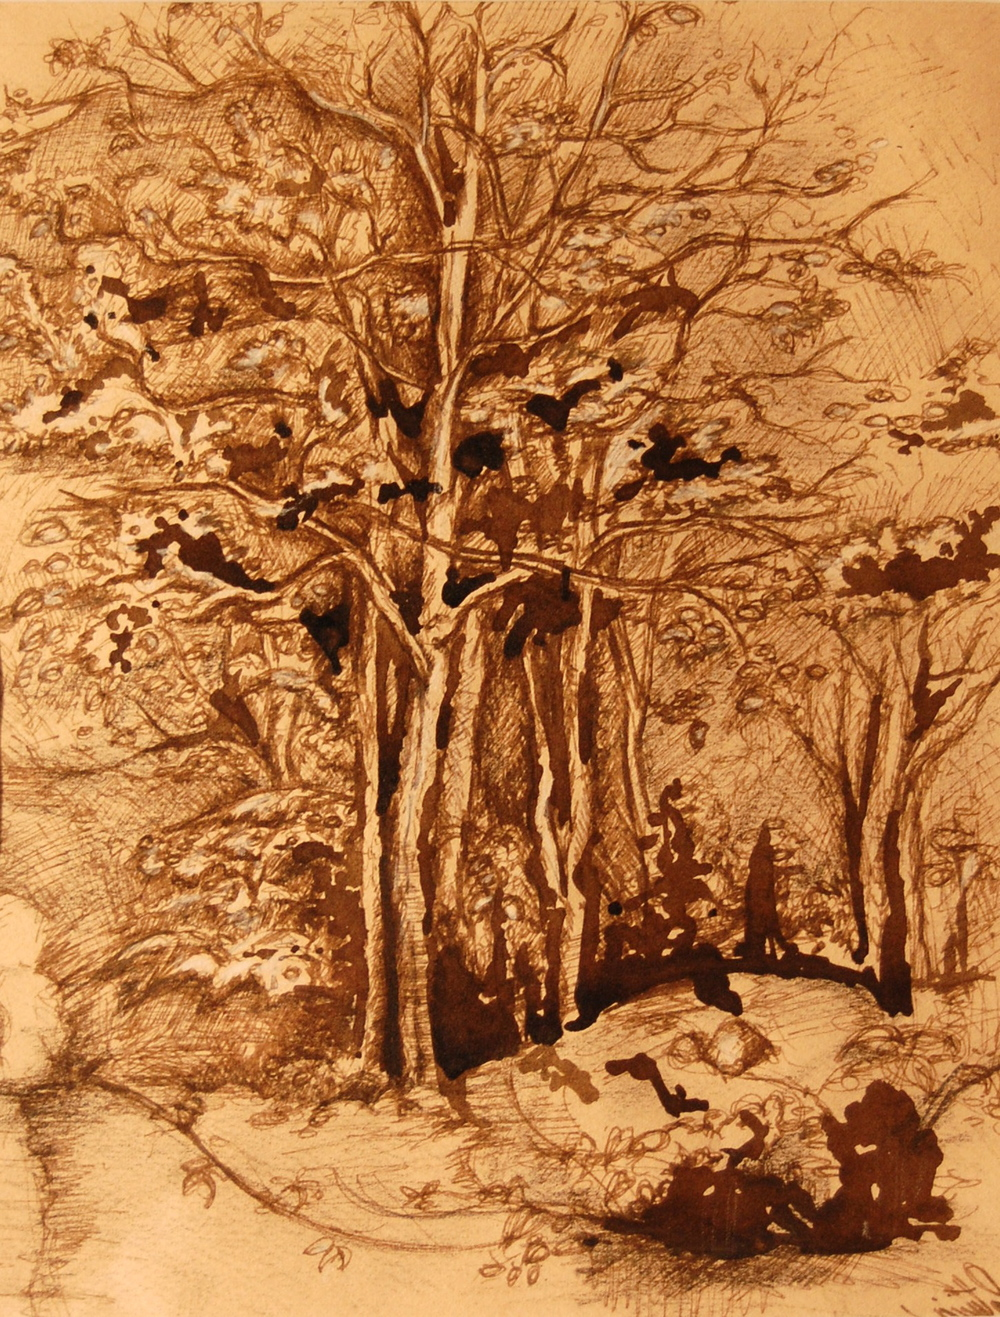 Forest in Sepia